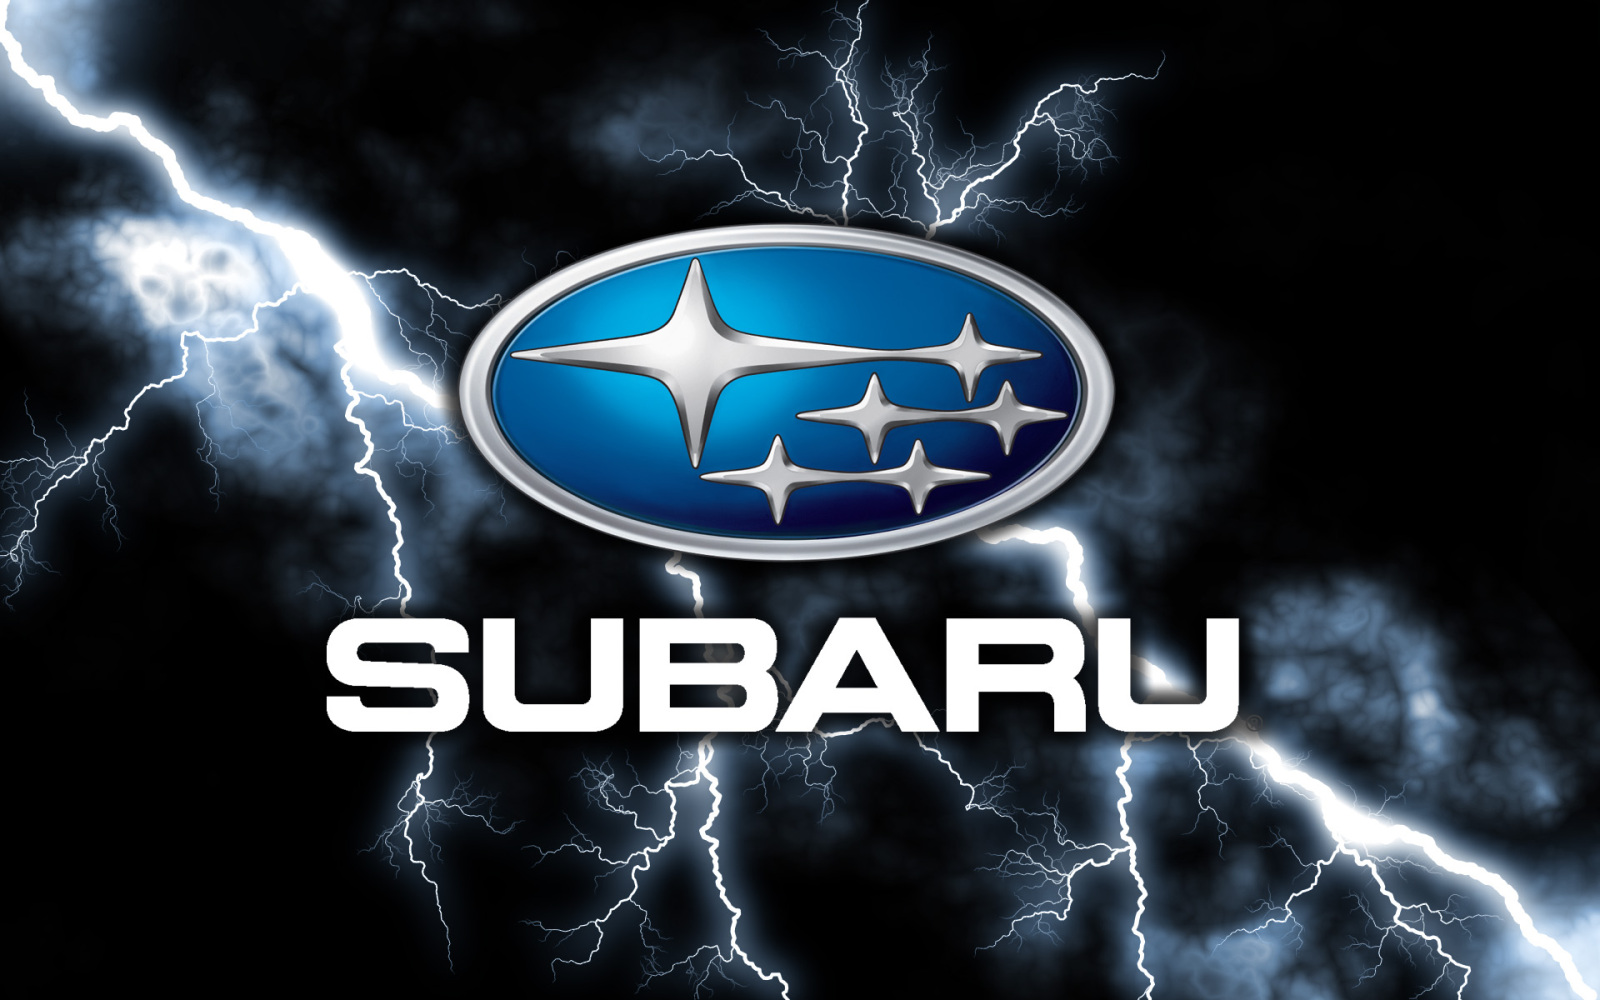 subaru logo auto cars concept. Black Bedroom Furniture Sets. Home Design Ideas